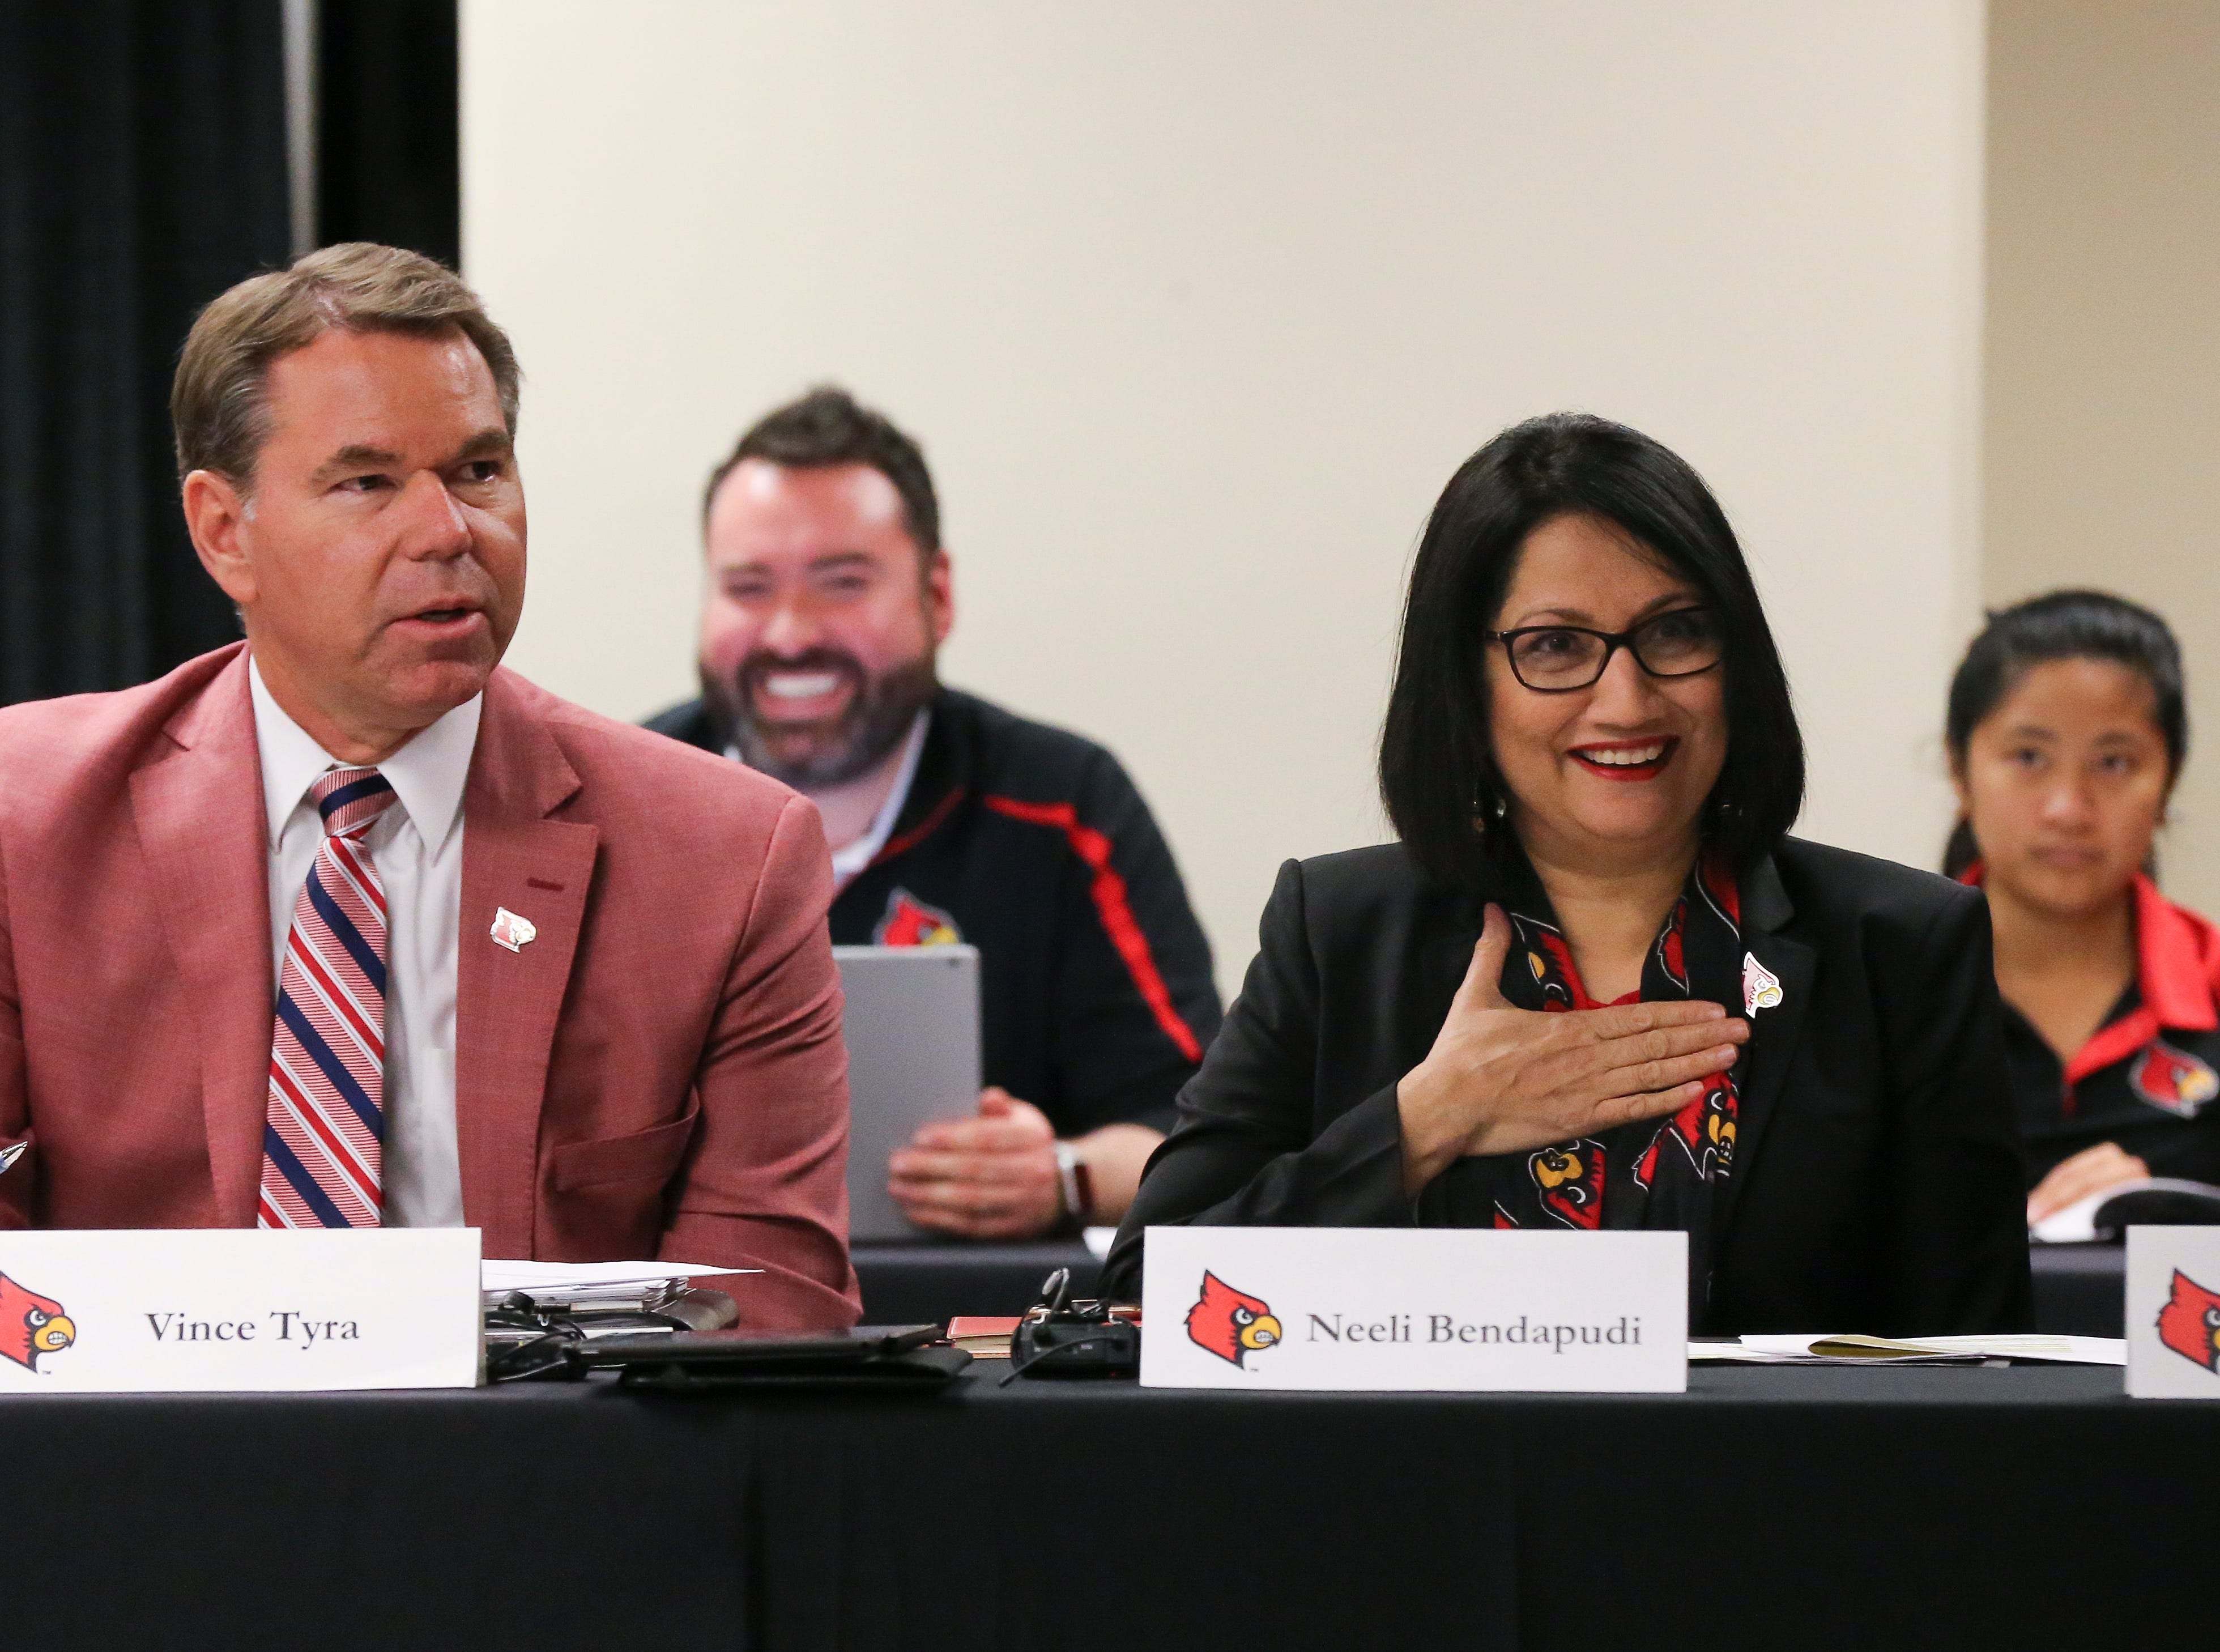 University of Louisville President Neeli Bendapudi, right, conducted the University of Louisville Athletic Association meeting as athletic director Vince Tyra sat next to her before approving Scott Satterfield as the new U of L head football coach at Cardinal Stadium.  